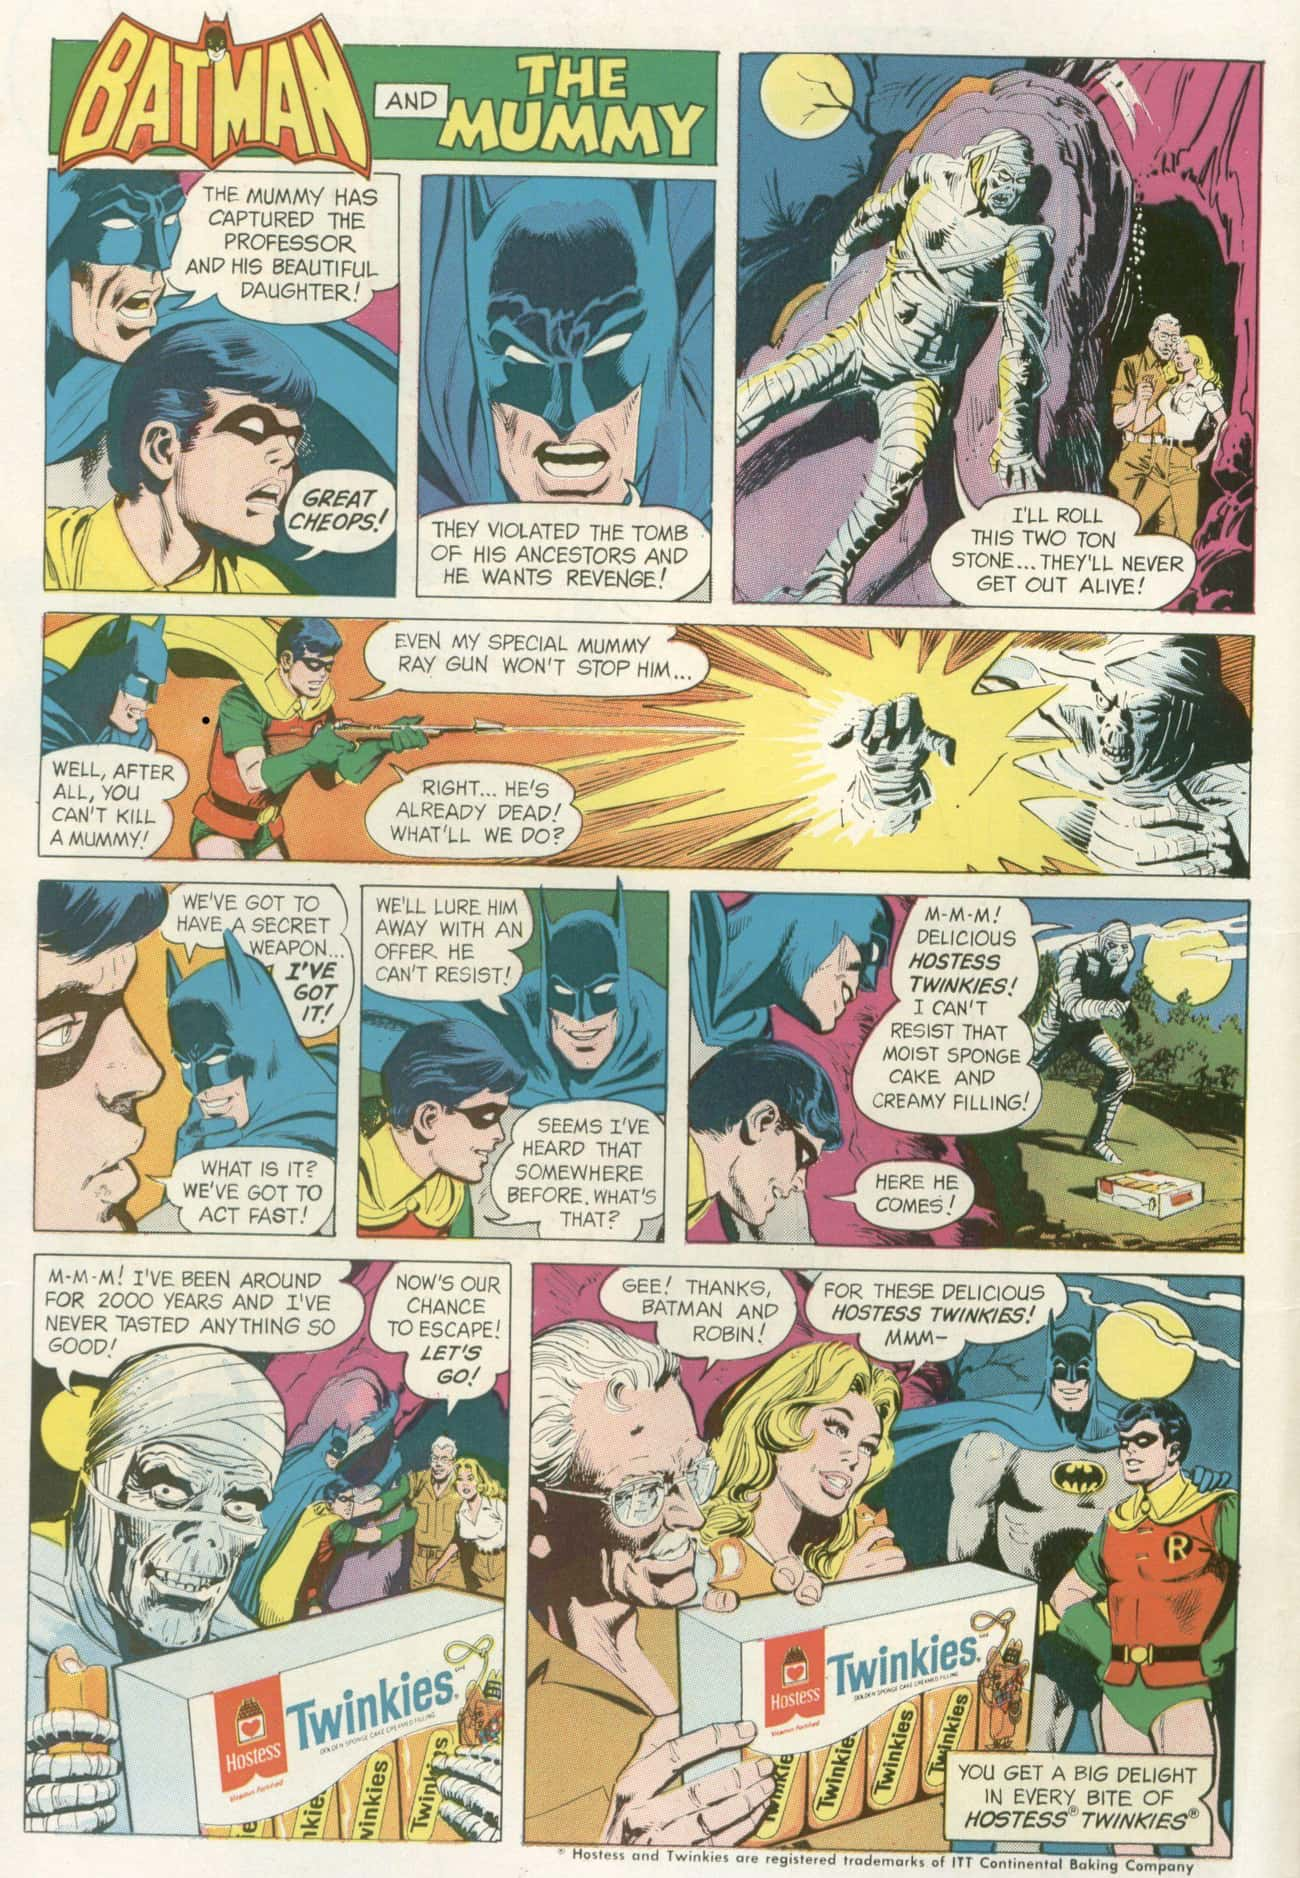 The Mummy's No Match For Batman AND Twinkies